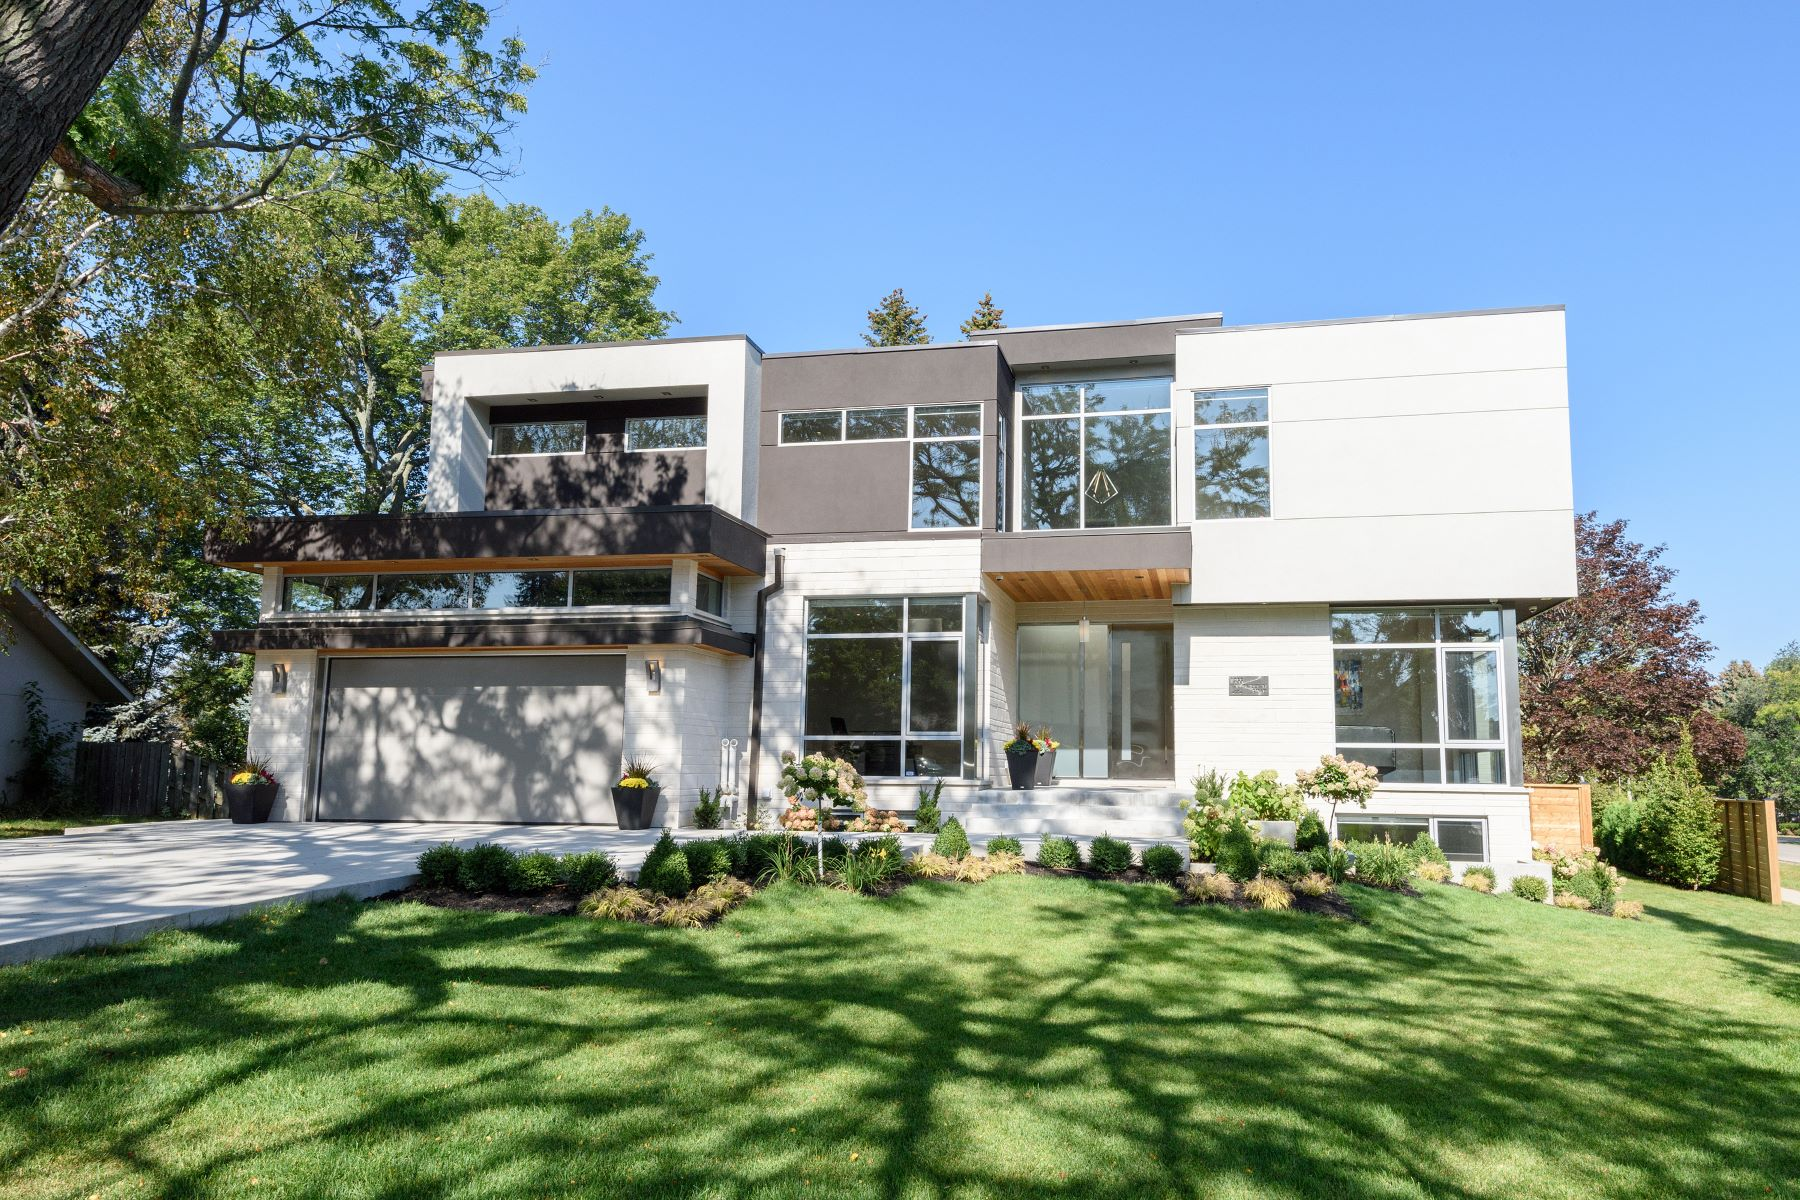 Single Family Home for Sale at Modern House in SW Oakville 1355 Willowdown Road, Oakville, Ontario, L6L 1R8 Canada